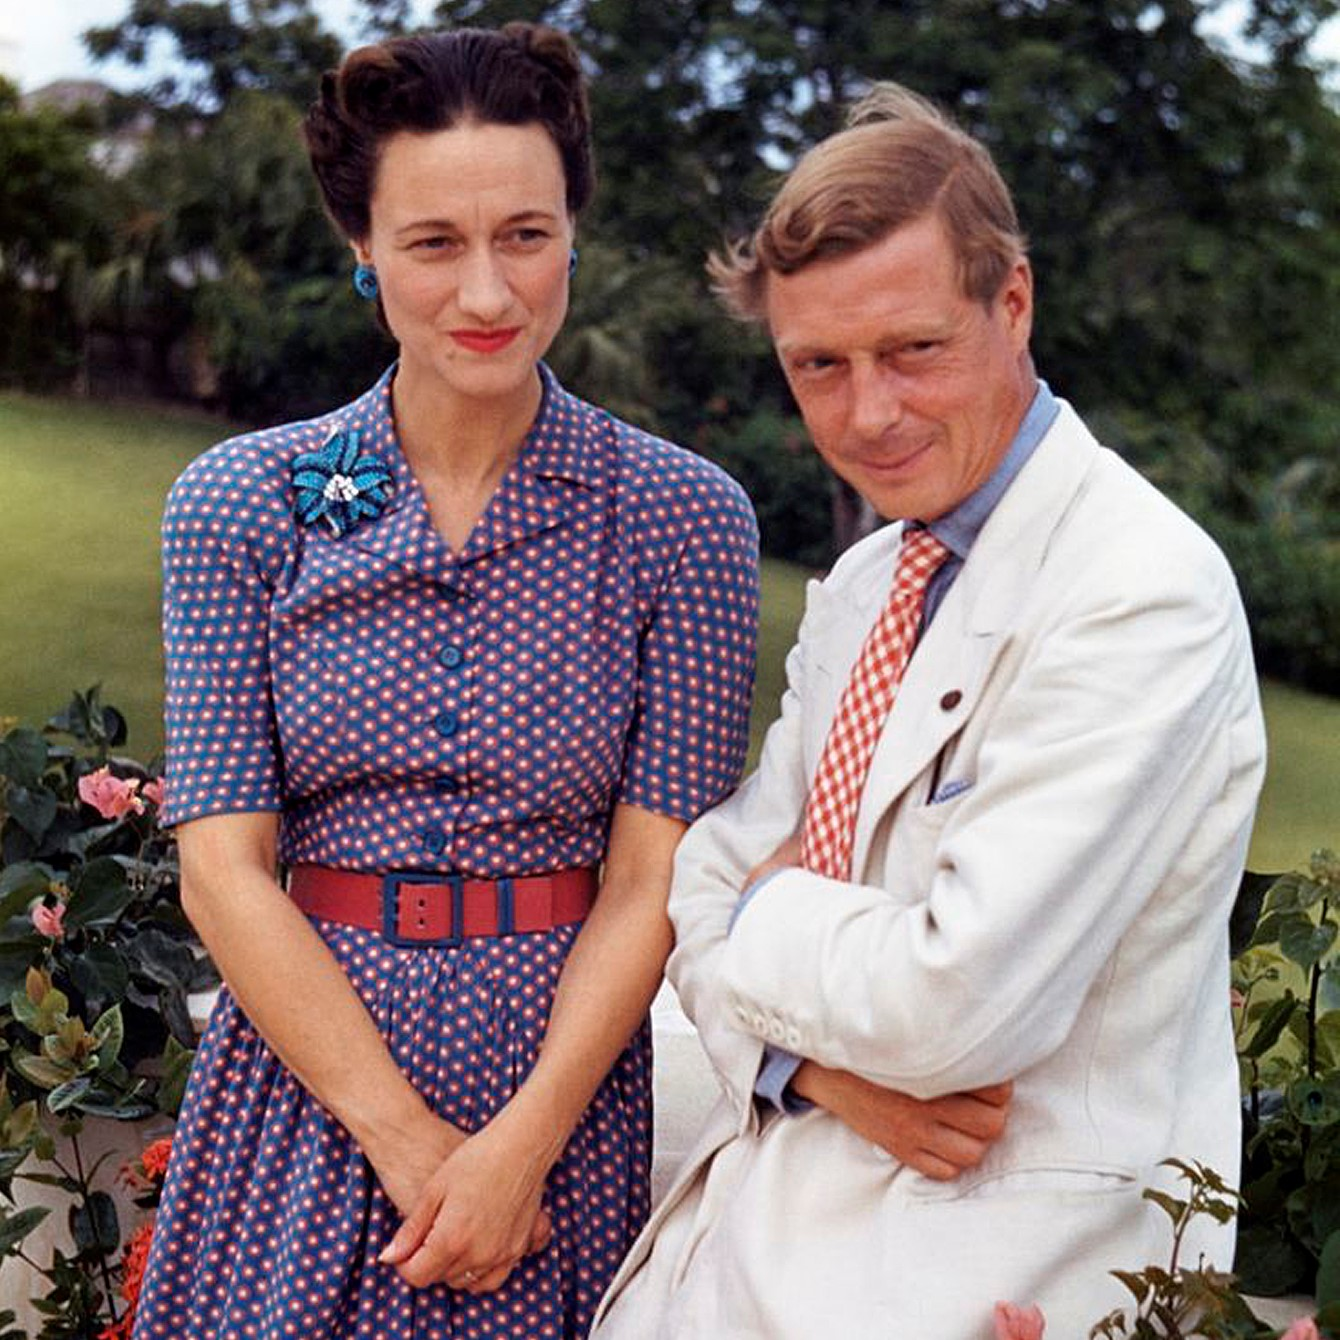 The Duke of Windsor with his wife Duchess Wallis Simpson